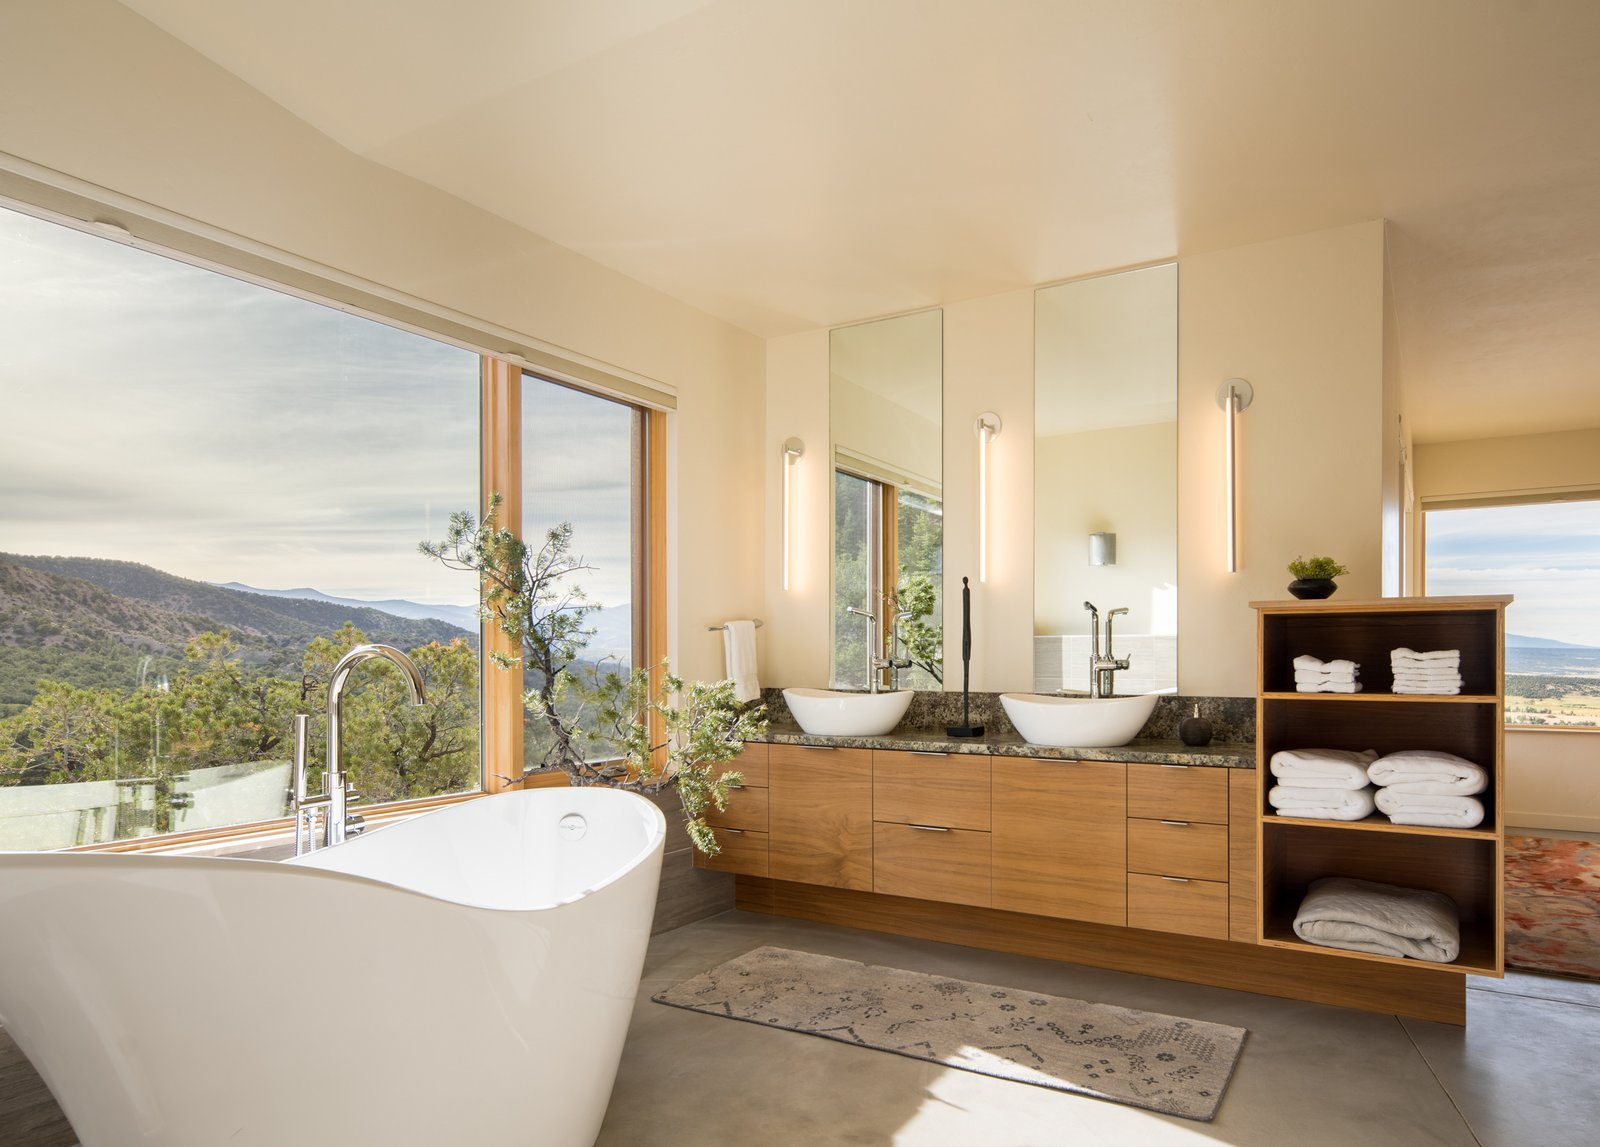 Bath Room, Freestanding Tub, Vessel Sink, Soaking Tub, Concrete Floor, and Wall Lighting  Photo 2 of 5 in Top 5 Homes of the Week With Blissful Bathrooms from Northern Slope Sanctuary